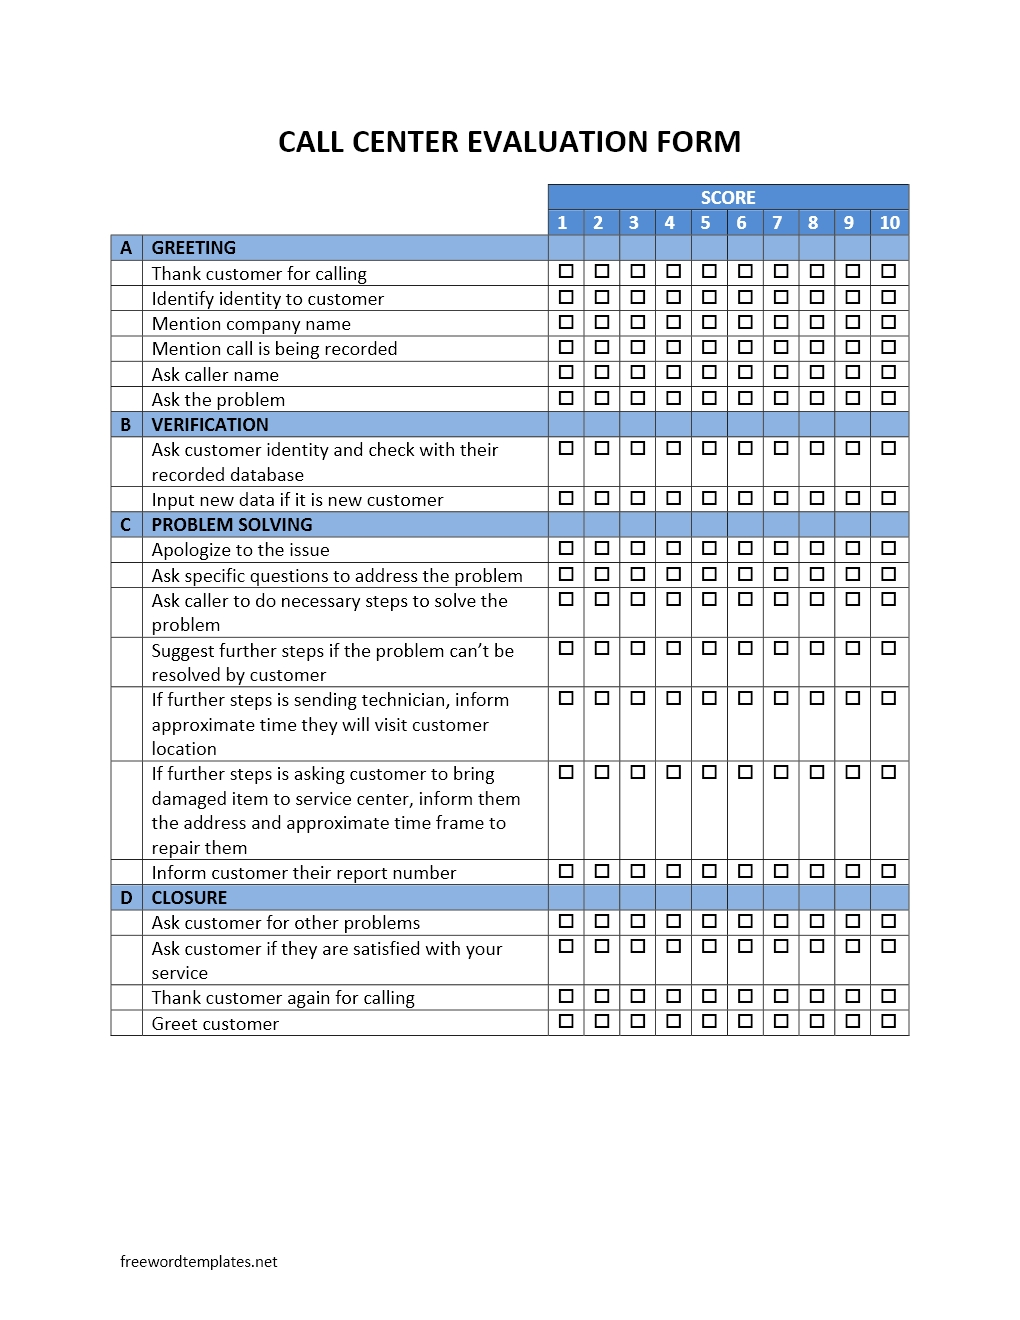 Call Center Evaluation Form Template